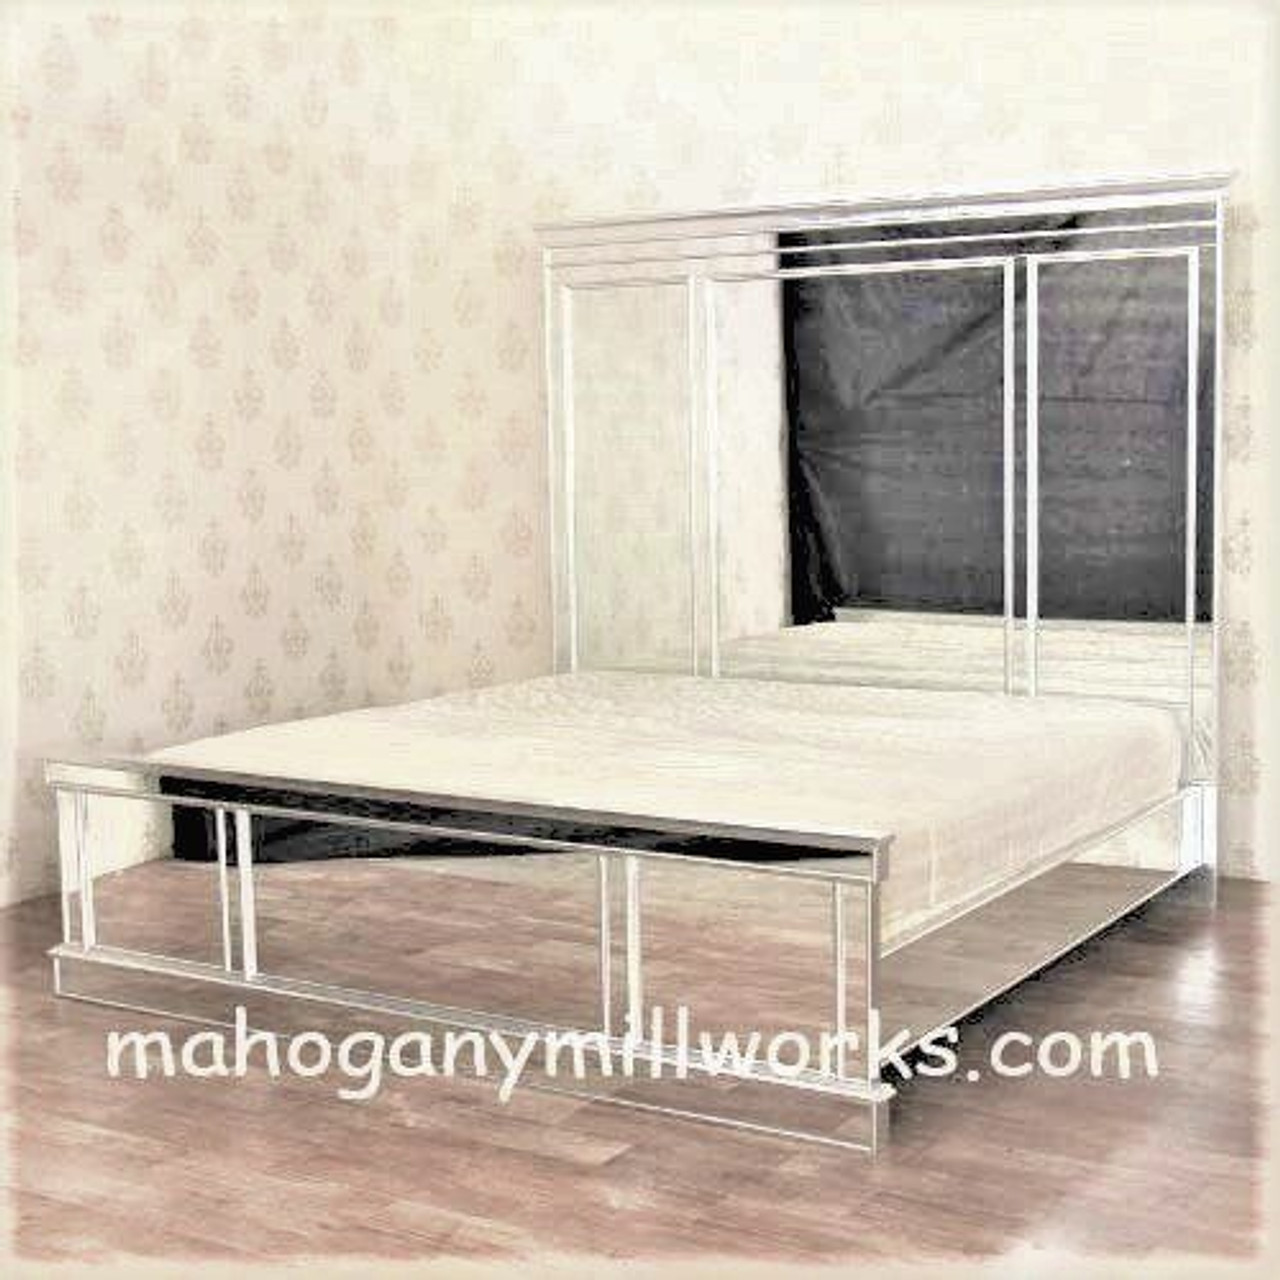 Mirrored Beds Bedroom Furniture And Bedroom Sets Free Shipping